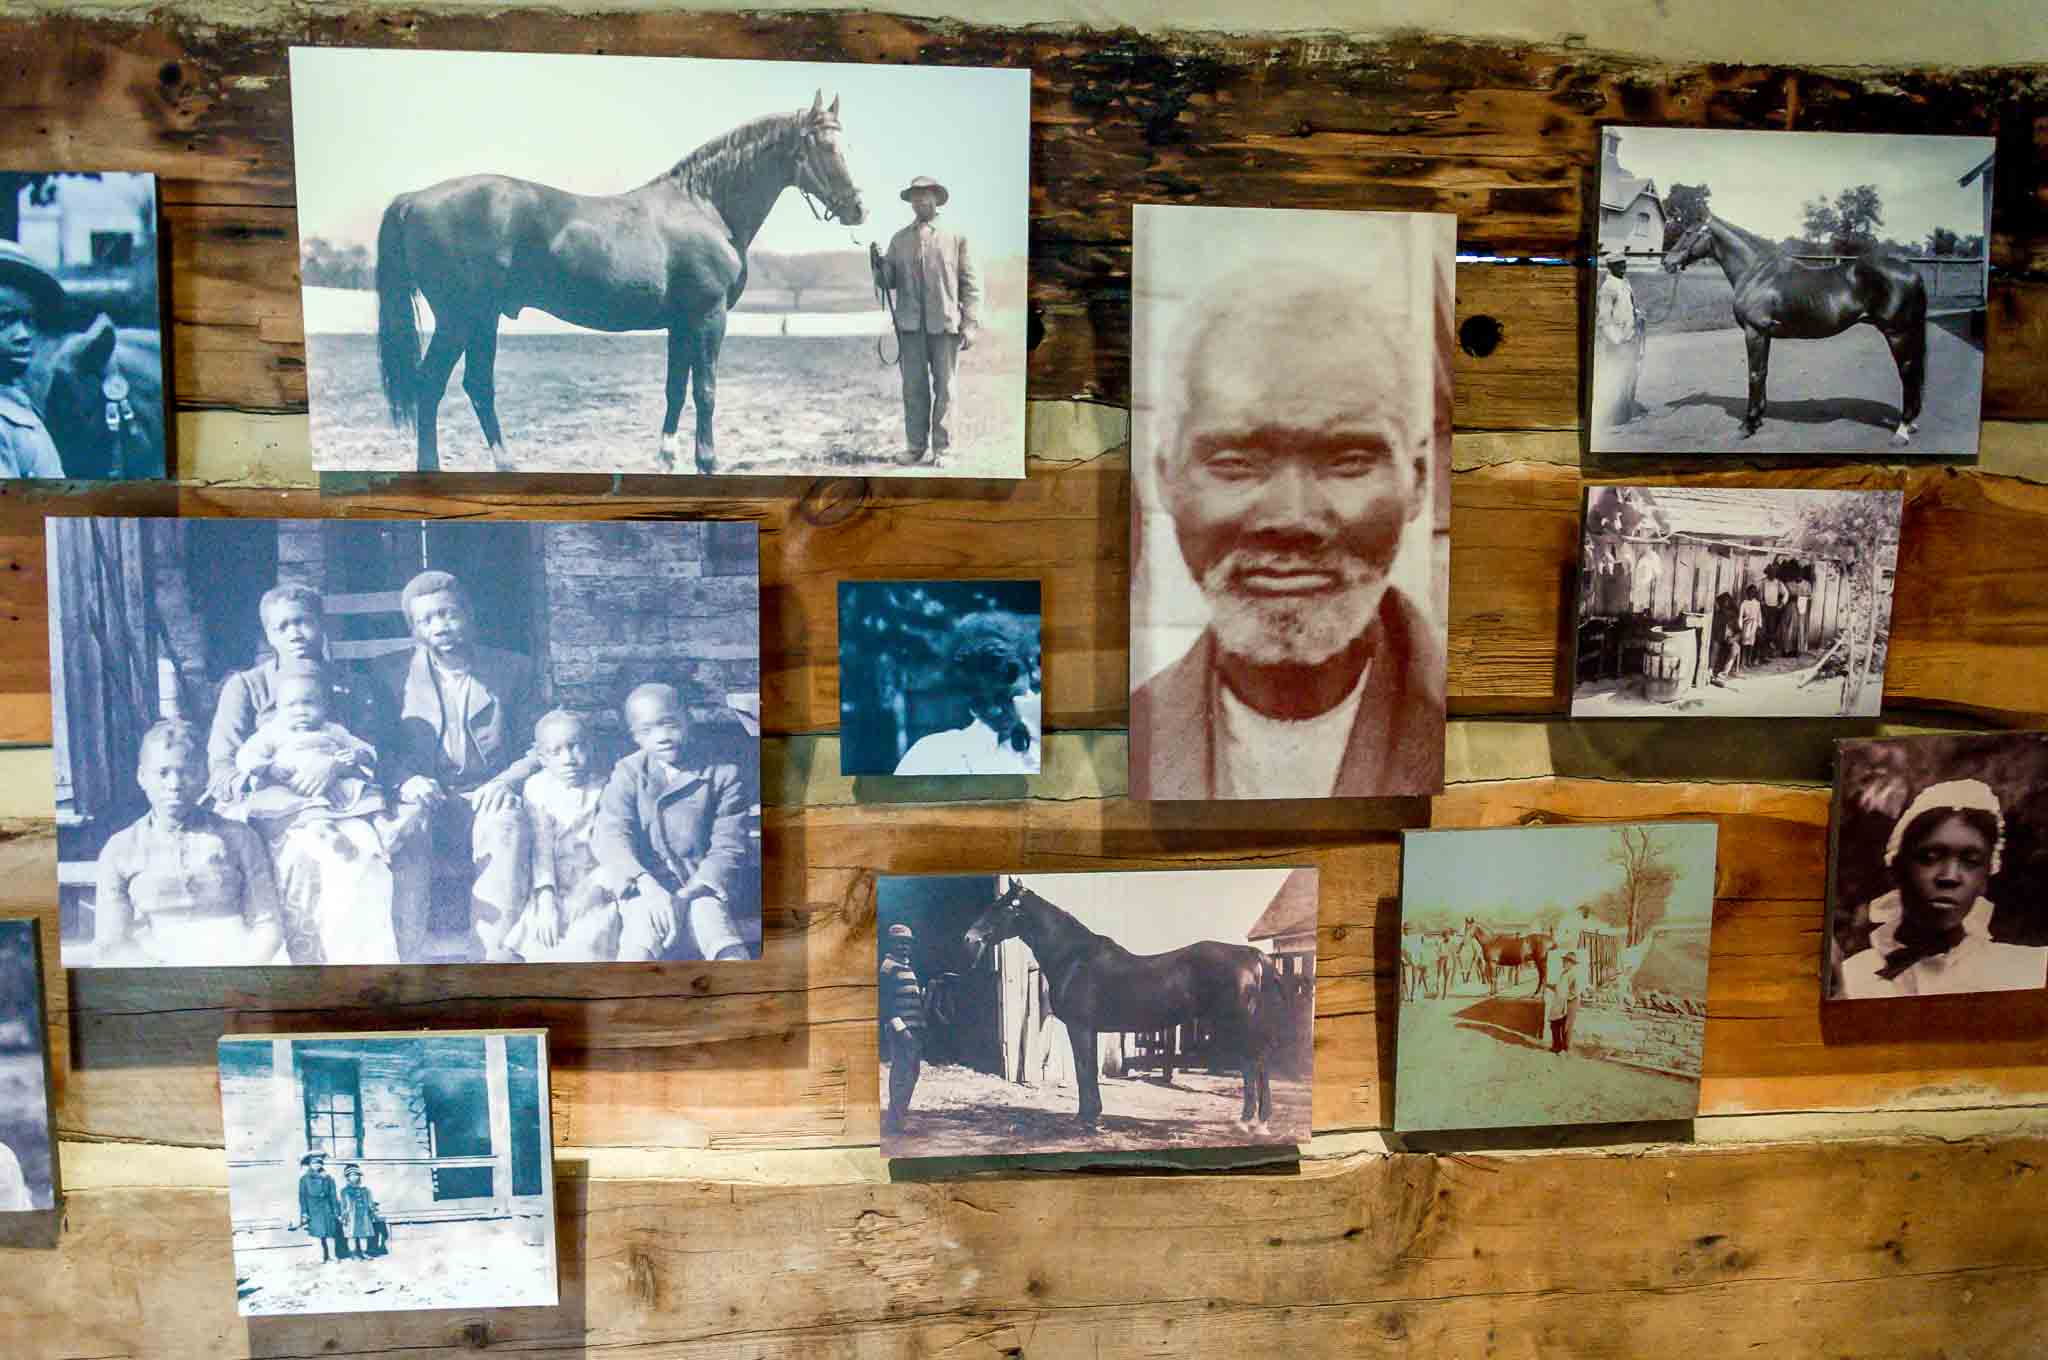 Photos of enslaved people who lived and worked on the plantation